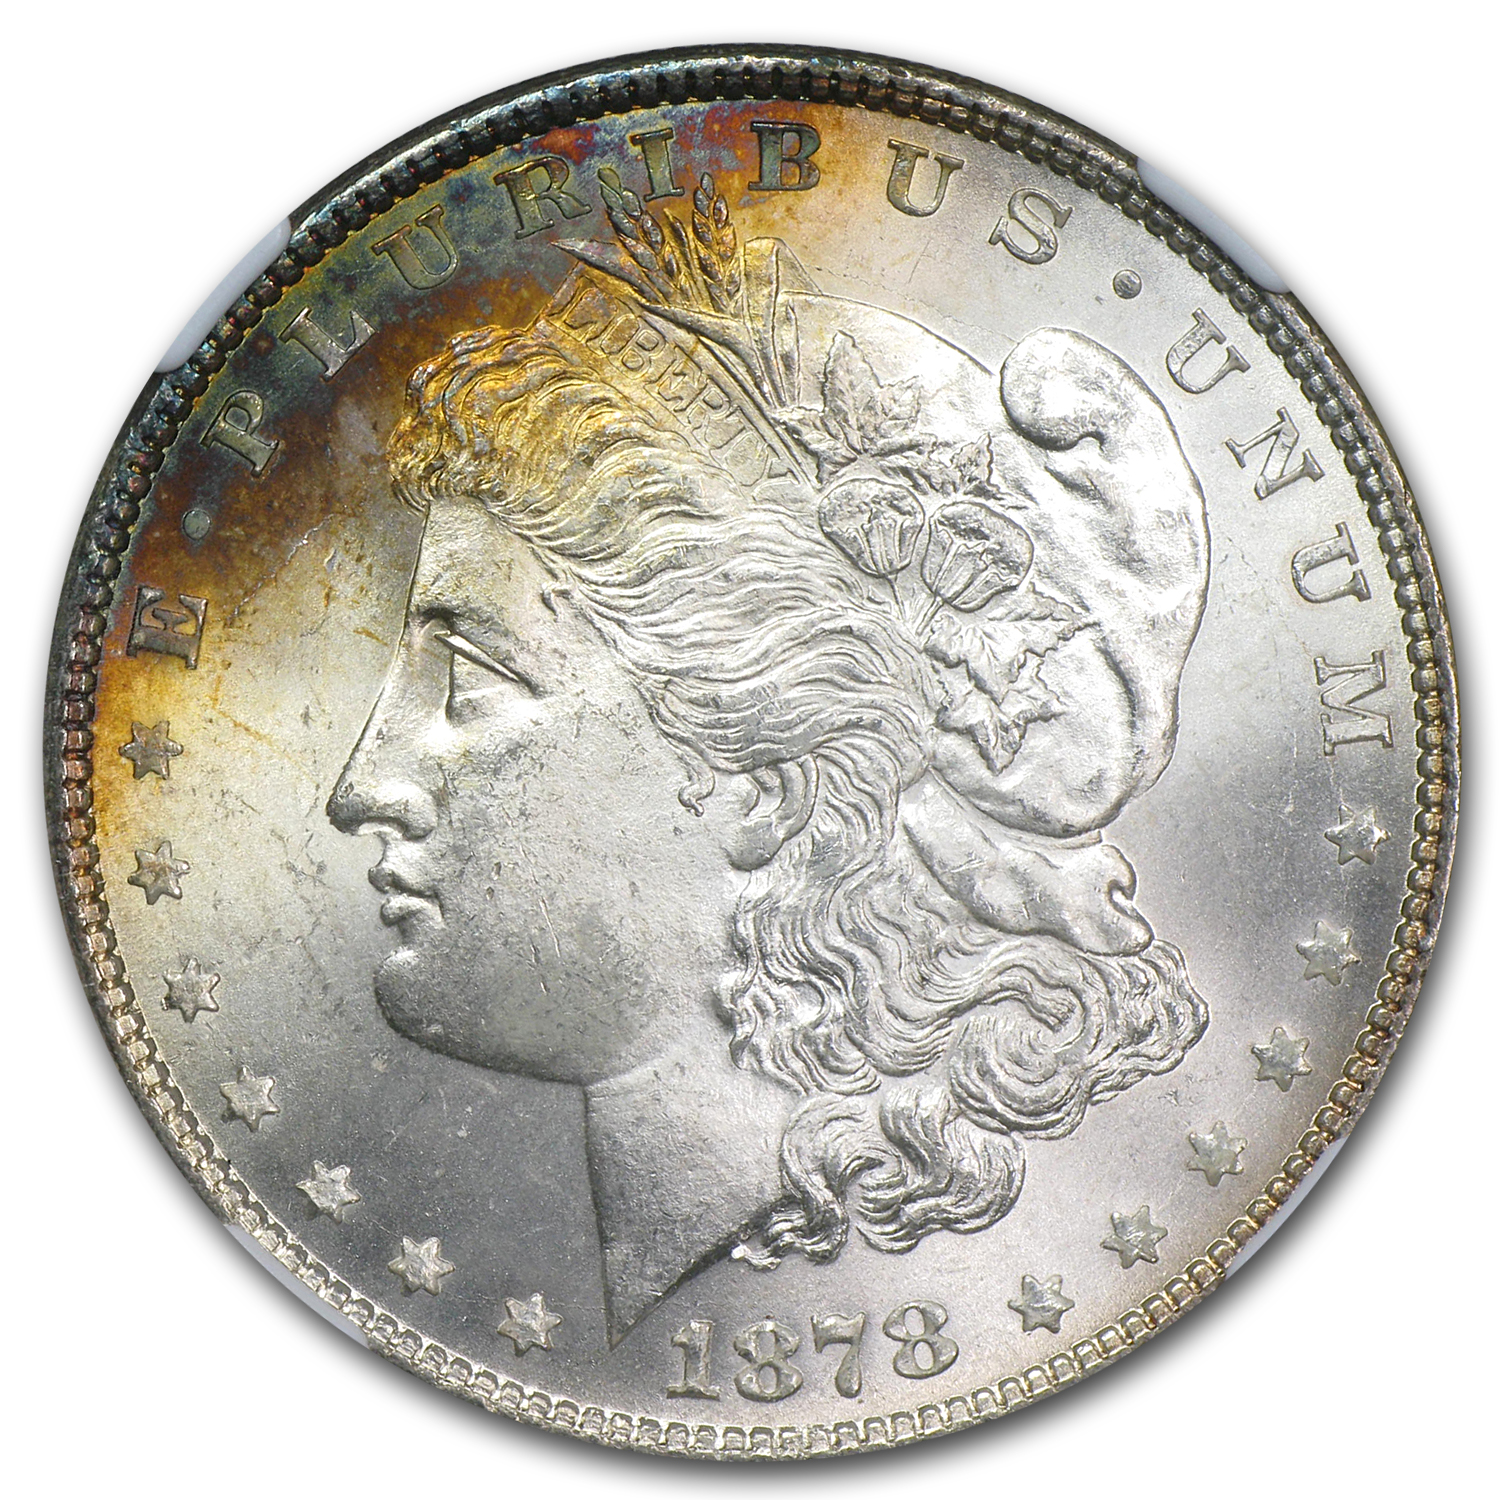 1878 Morgan Dollar 7 TF Rev of 78 MS-65 NGC (Toning)